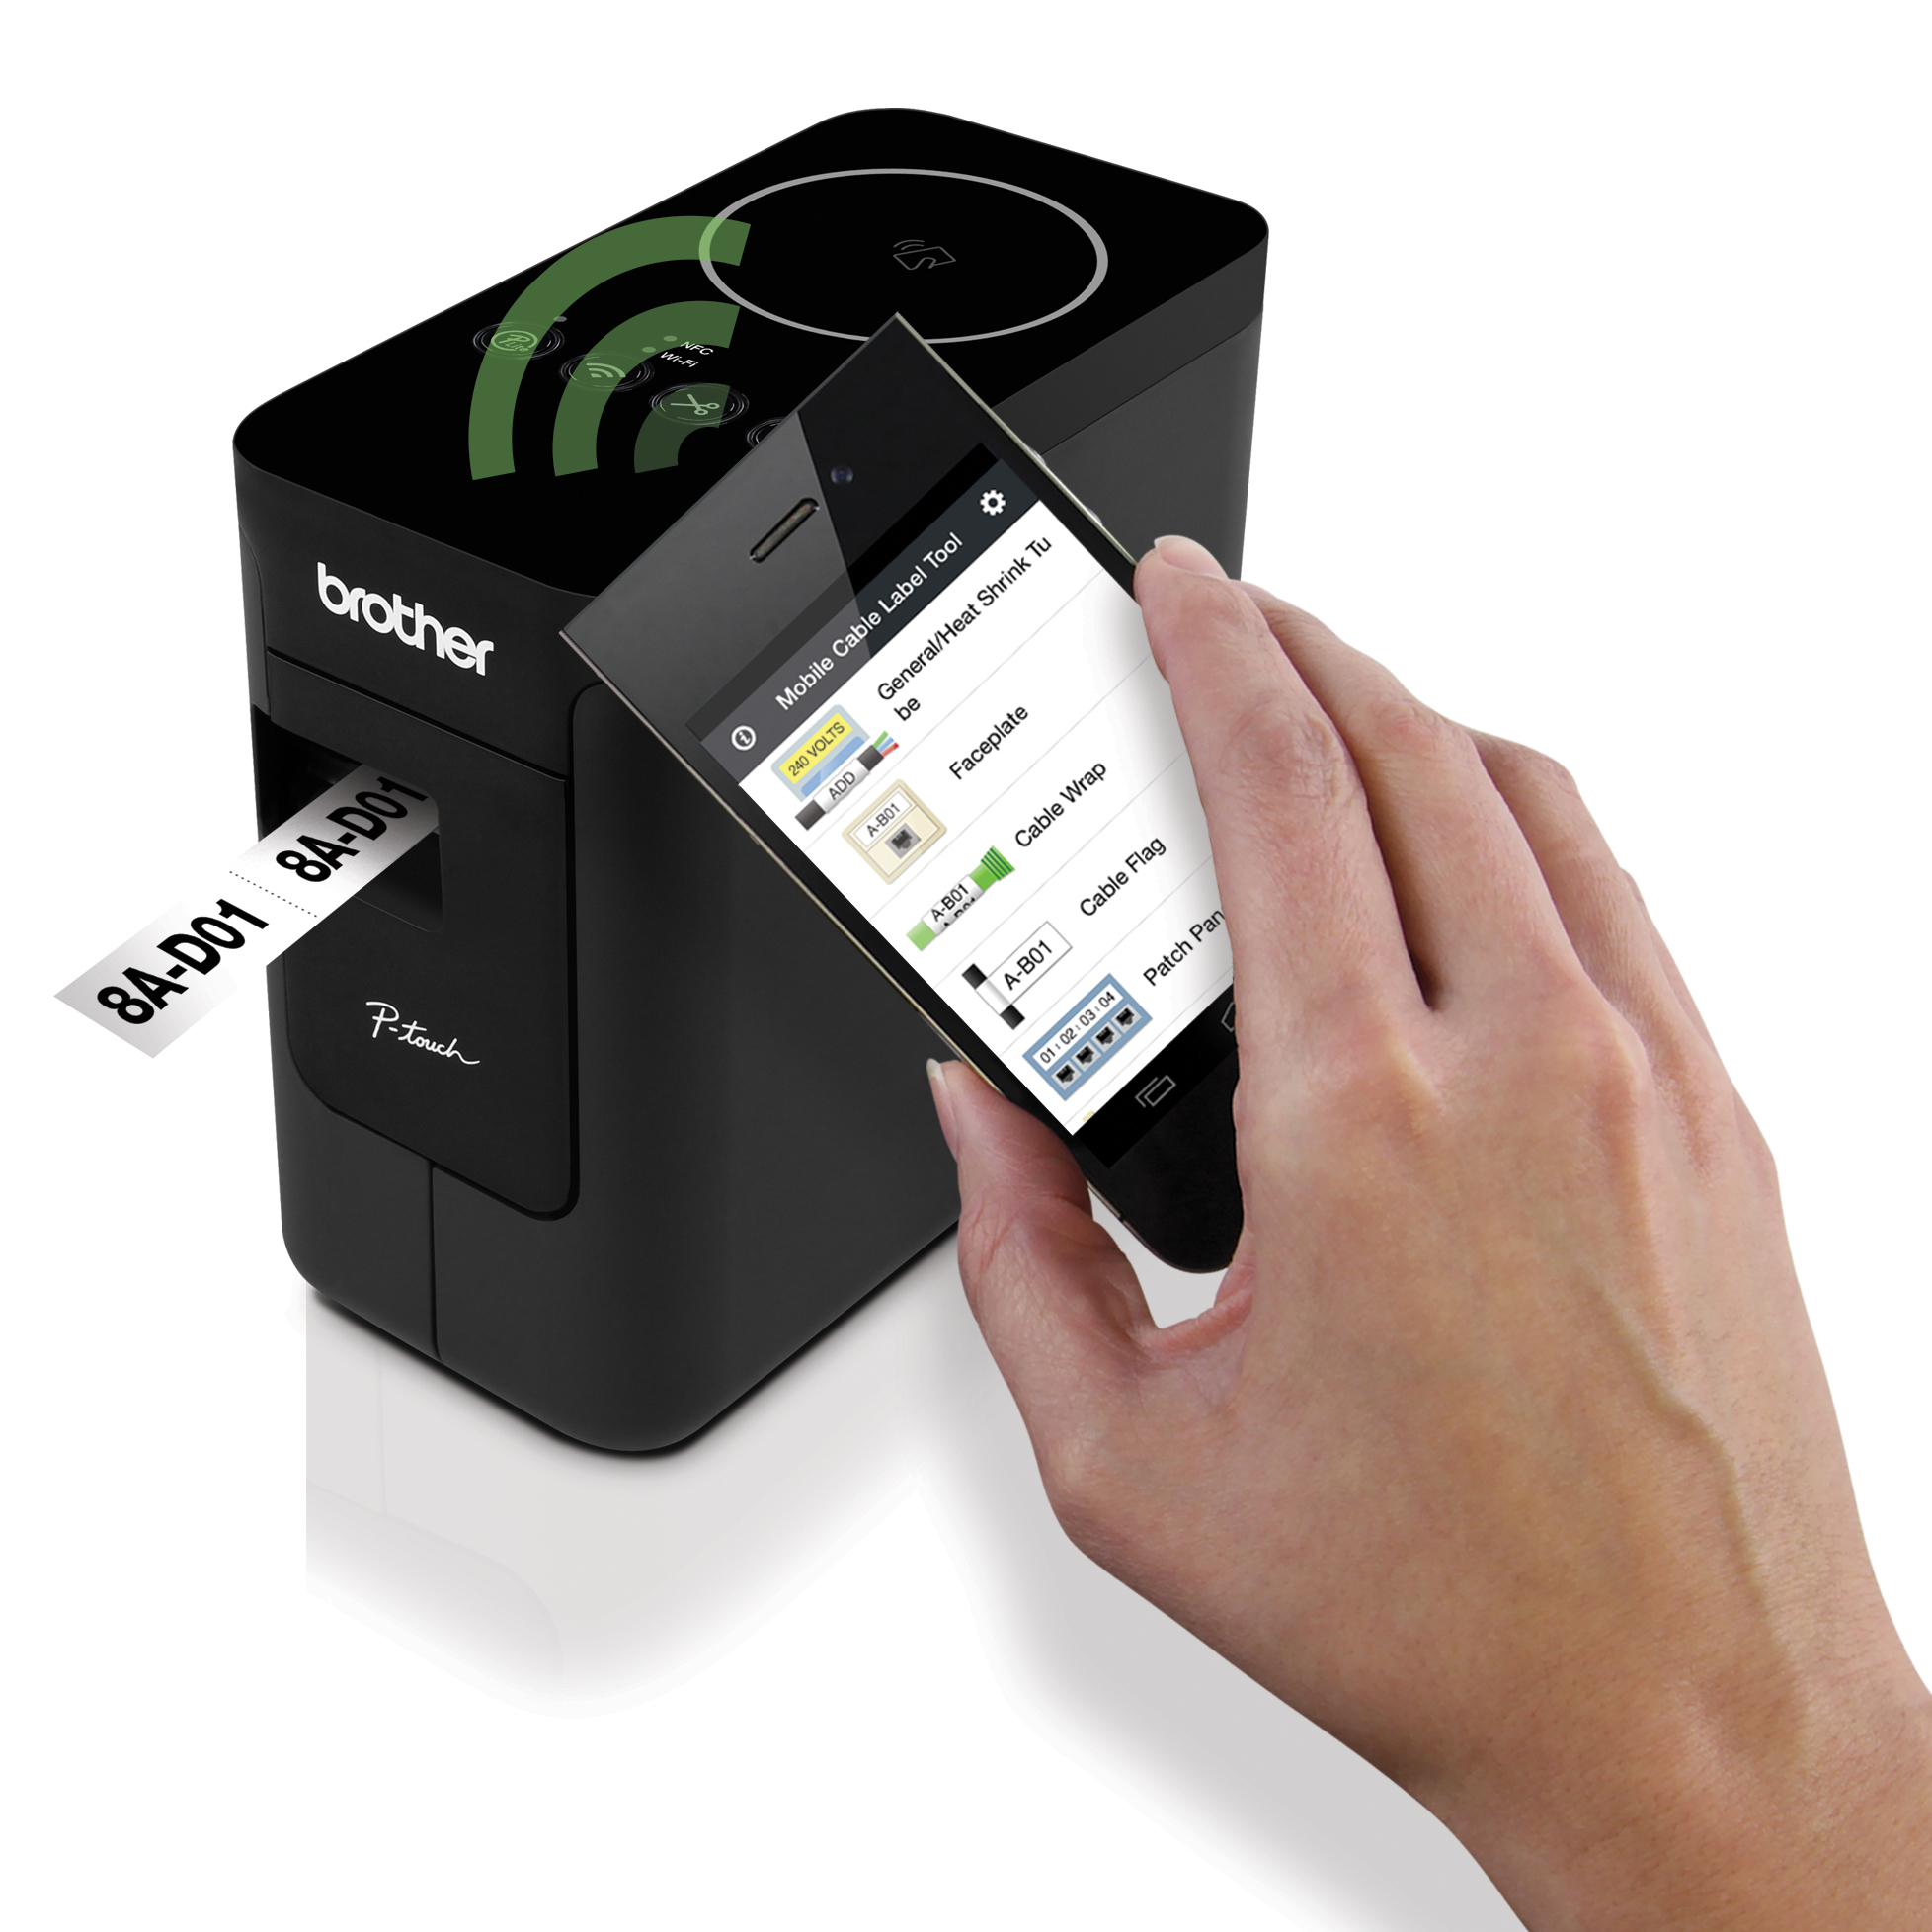 P-touch EDGE(R) PT P750WVP with mobile app enables fast jobsite labeling from iOS and Android smartphones and tablets (Photo: Business Wire)